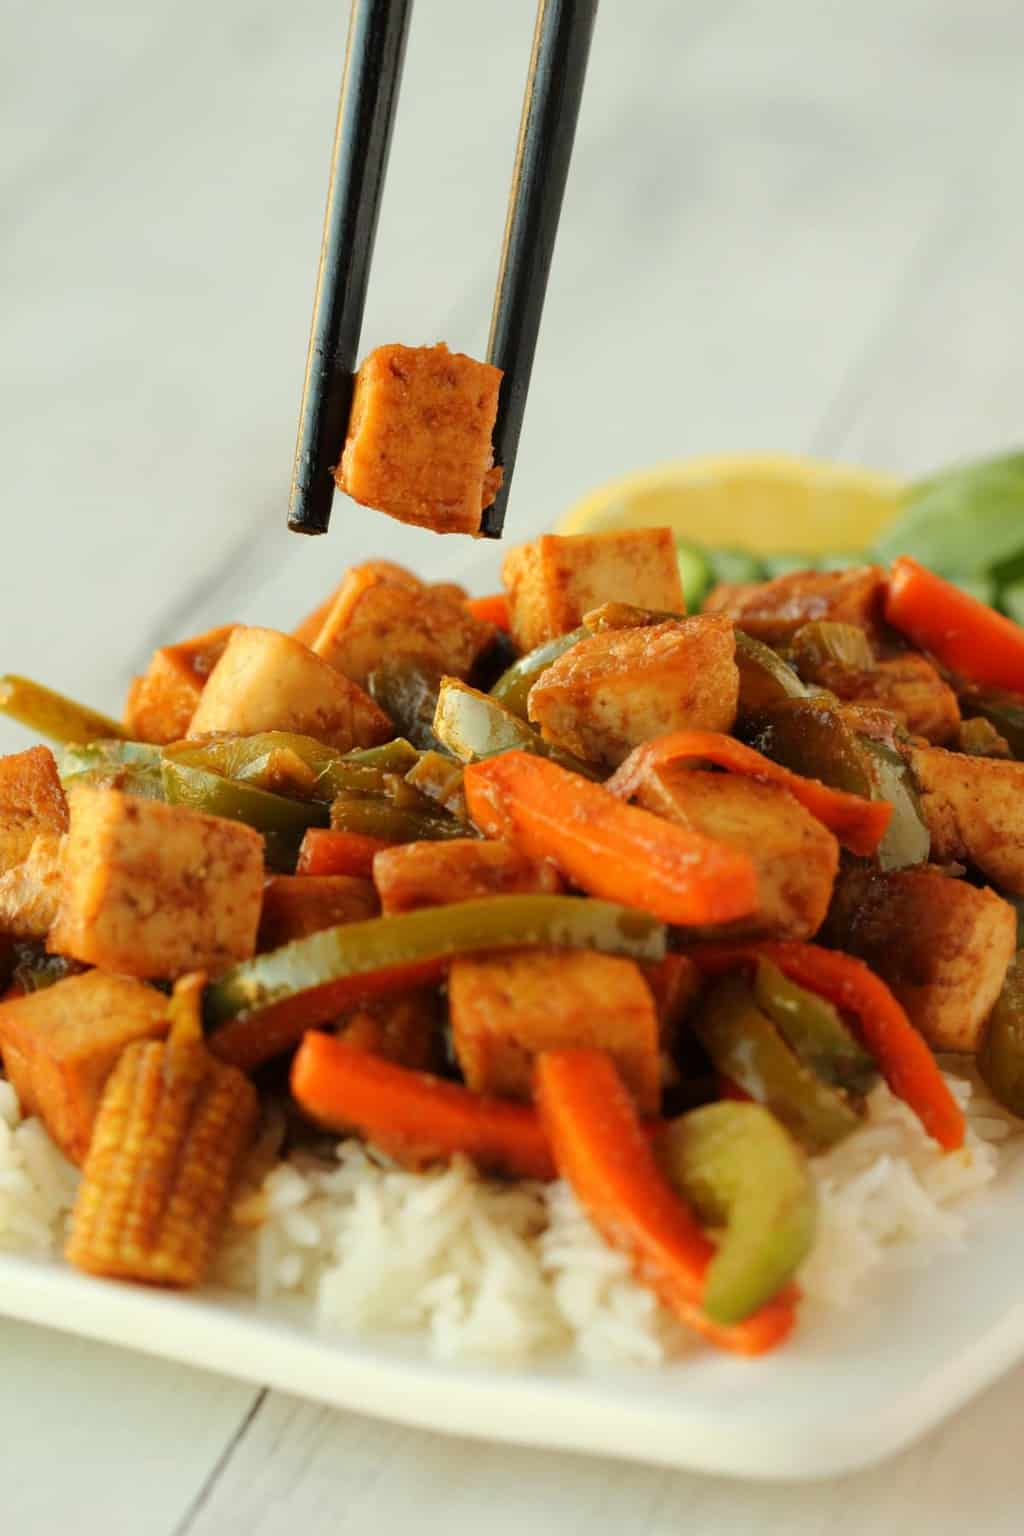 Chopsticks lifting a piece of tofu from a vegan tofu stir fry served over rice on a white plate.